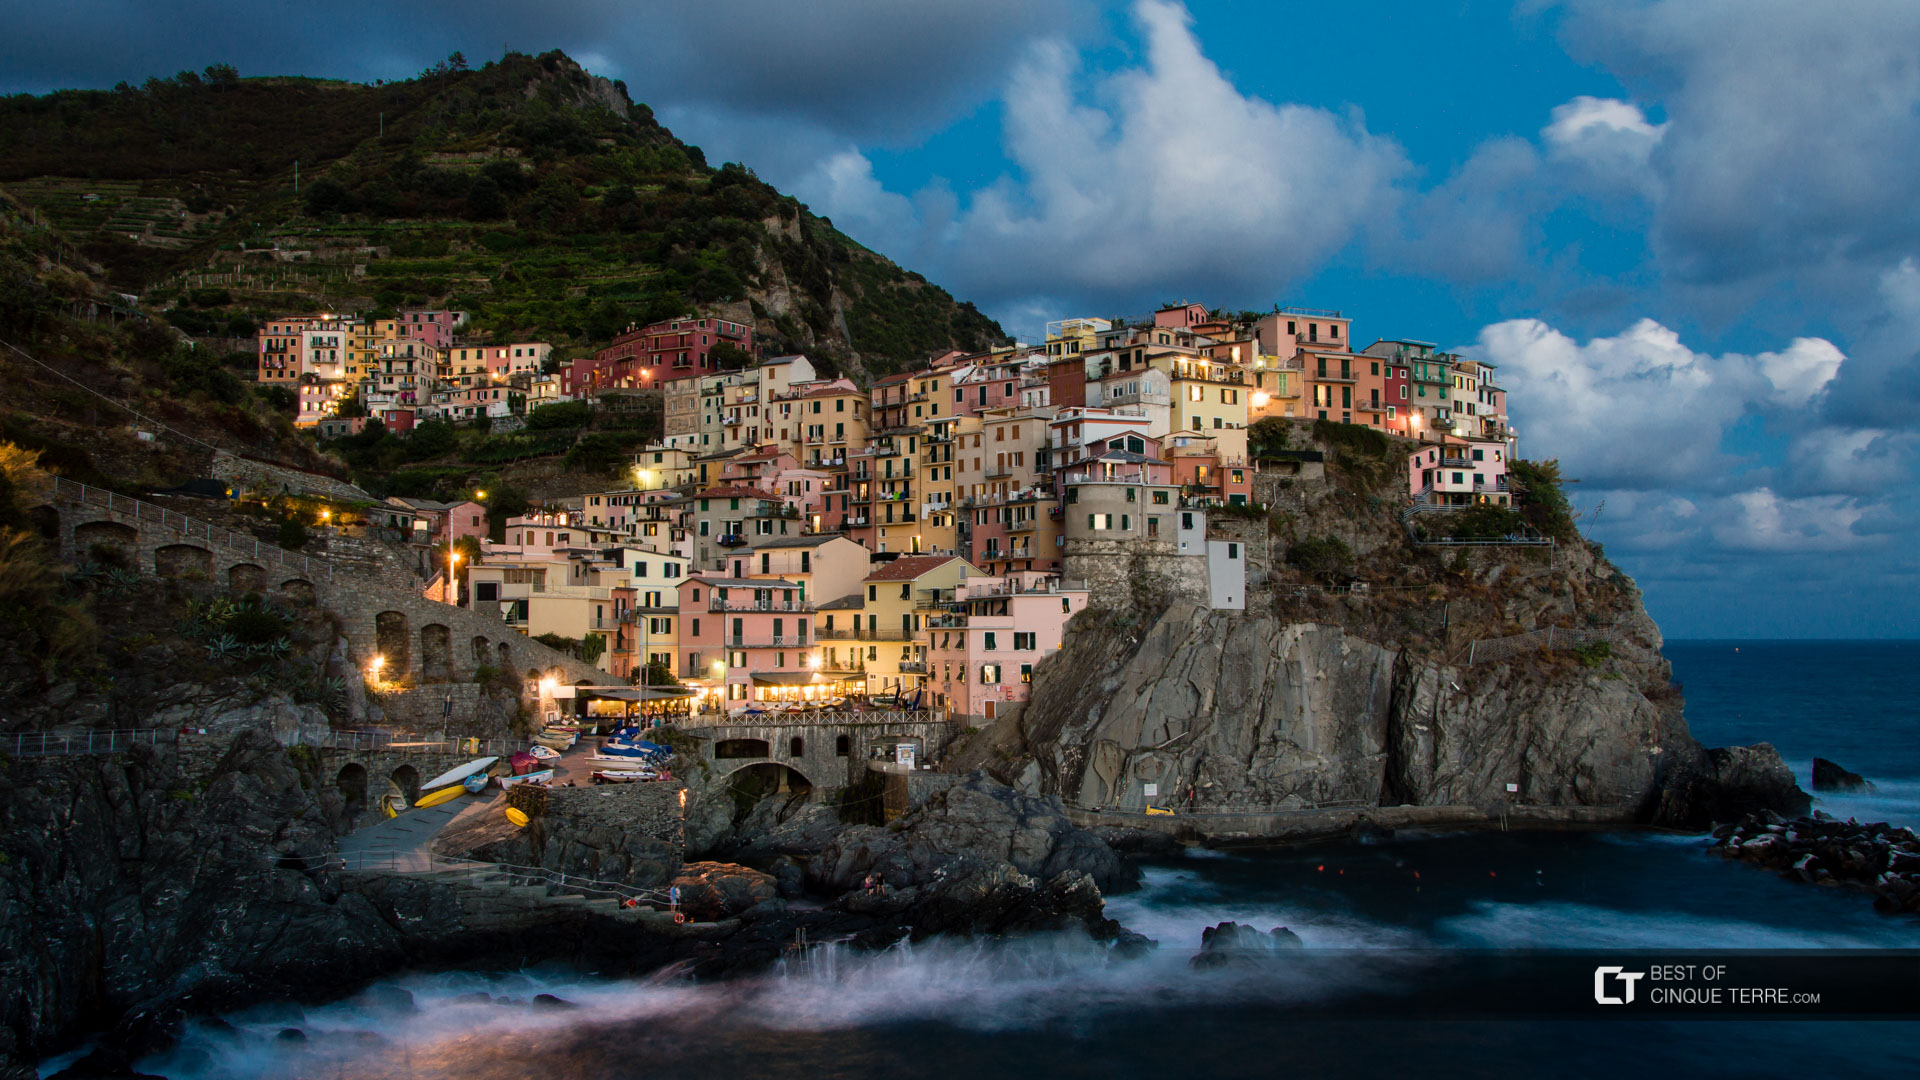 Cinque Terre Hotels With Parking